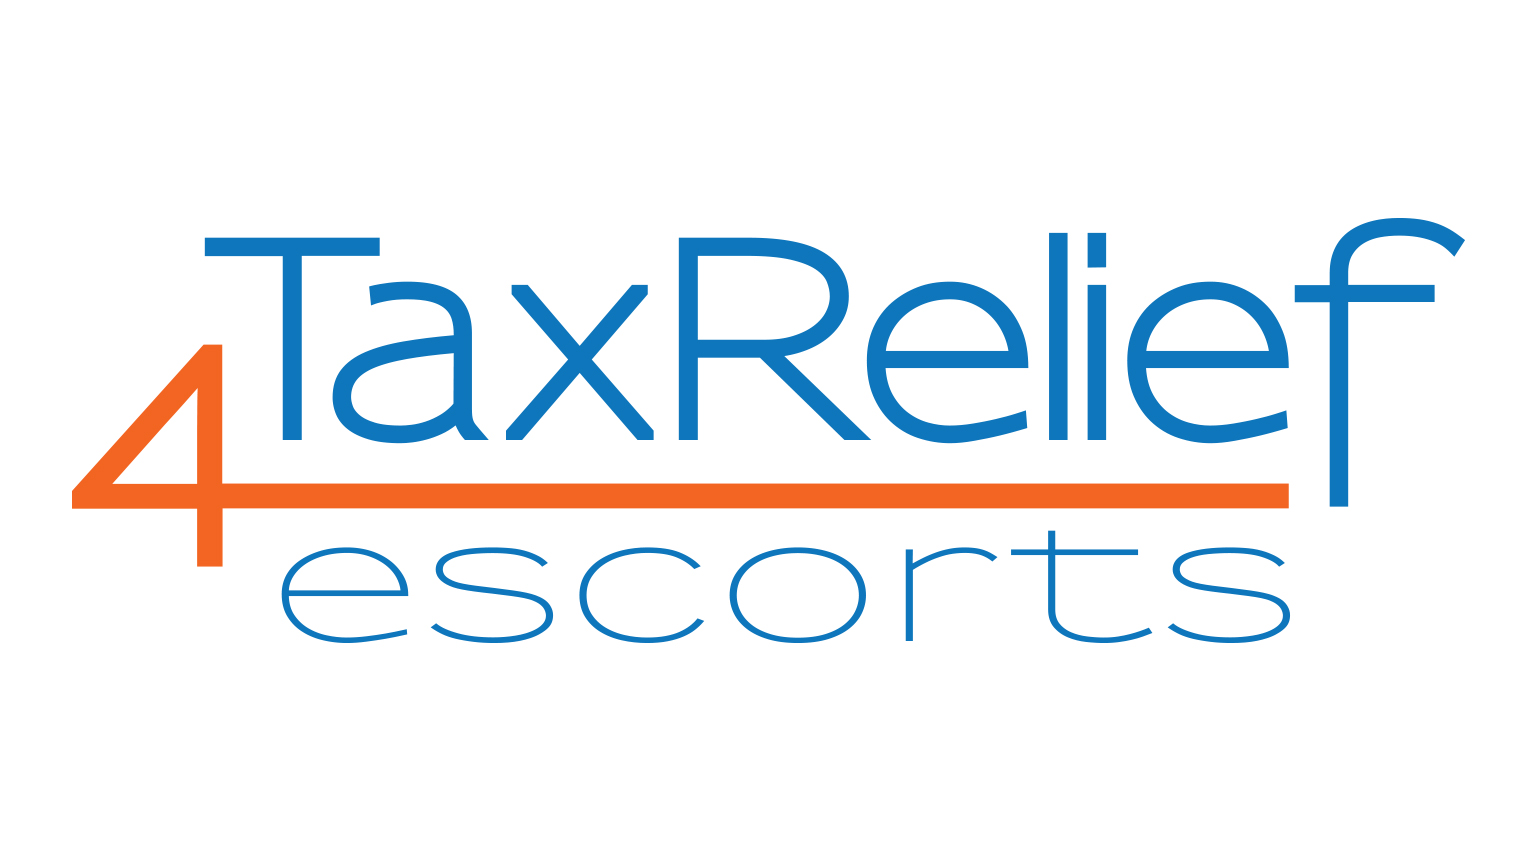 TaxRelief4escorts